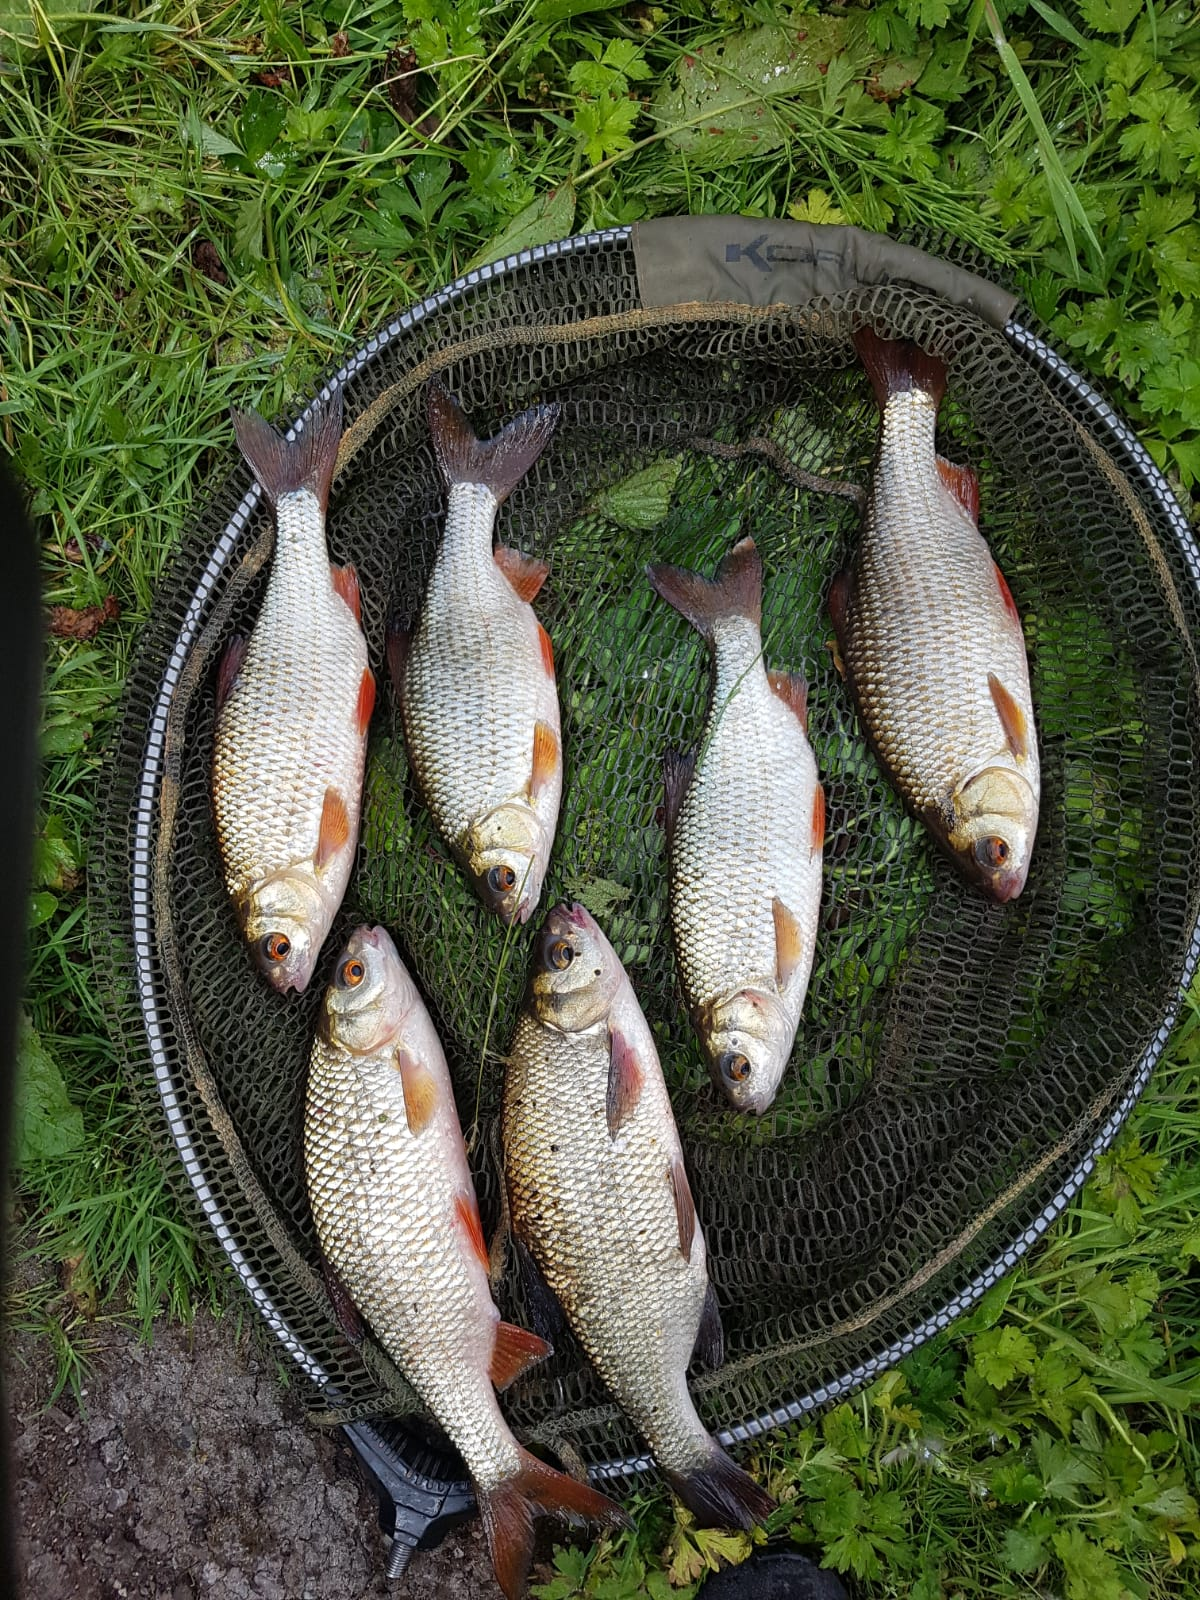 THE NEXT THREE PICTURES SHOW 7 x 1lb PLUS ROACH AND A 9lb MIRROR  CAUGHT BY JASON 14/07/18